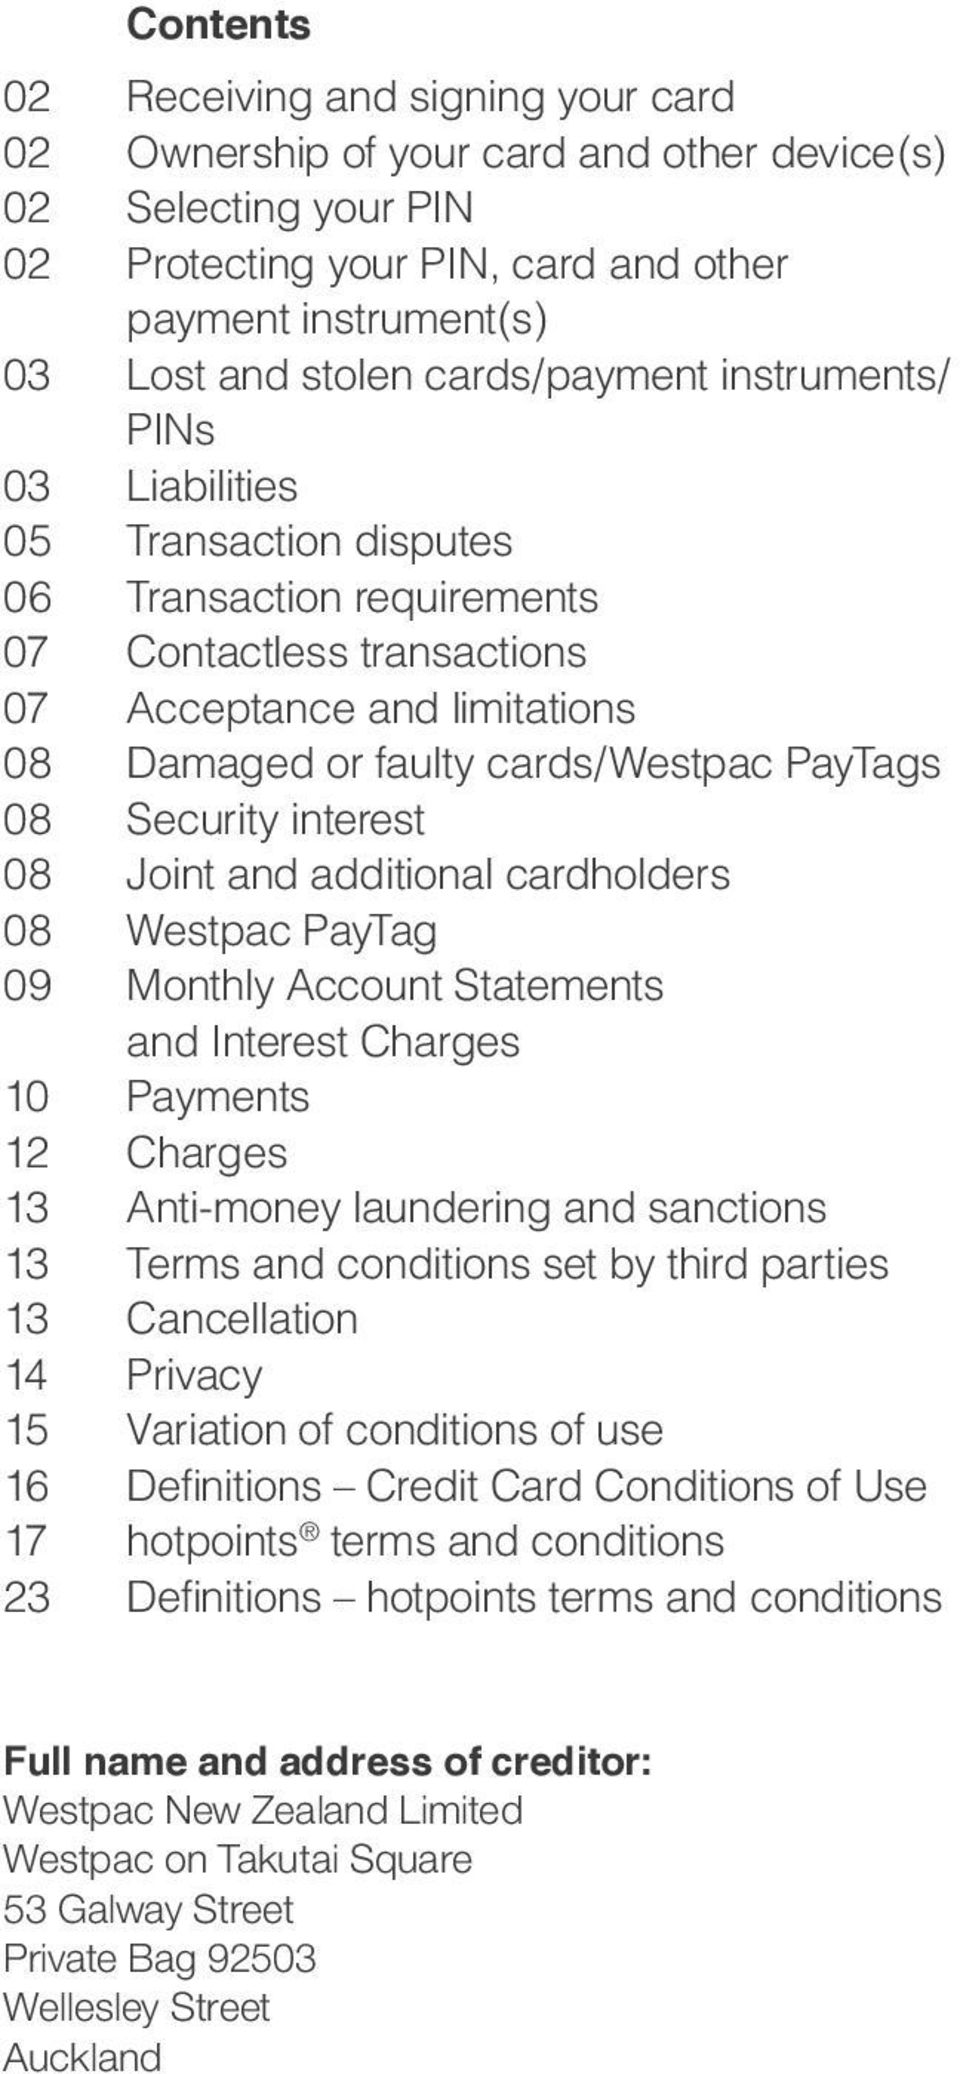 08 Security interest 08 Joint and additional cardholders 08 Westpac PayTag 09 Monthly Account Statements and Interest Charges 10 Payments 12 Charges 13 Anti-money laundering and sanctions 13 Terms